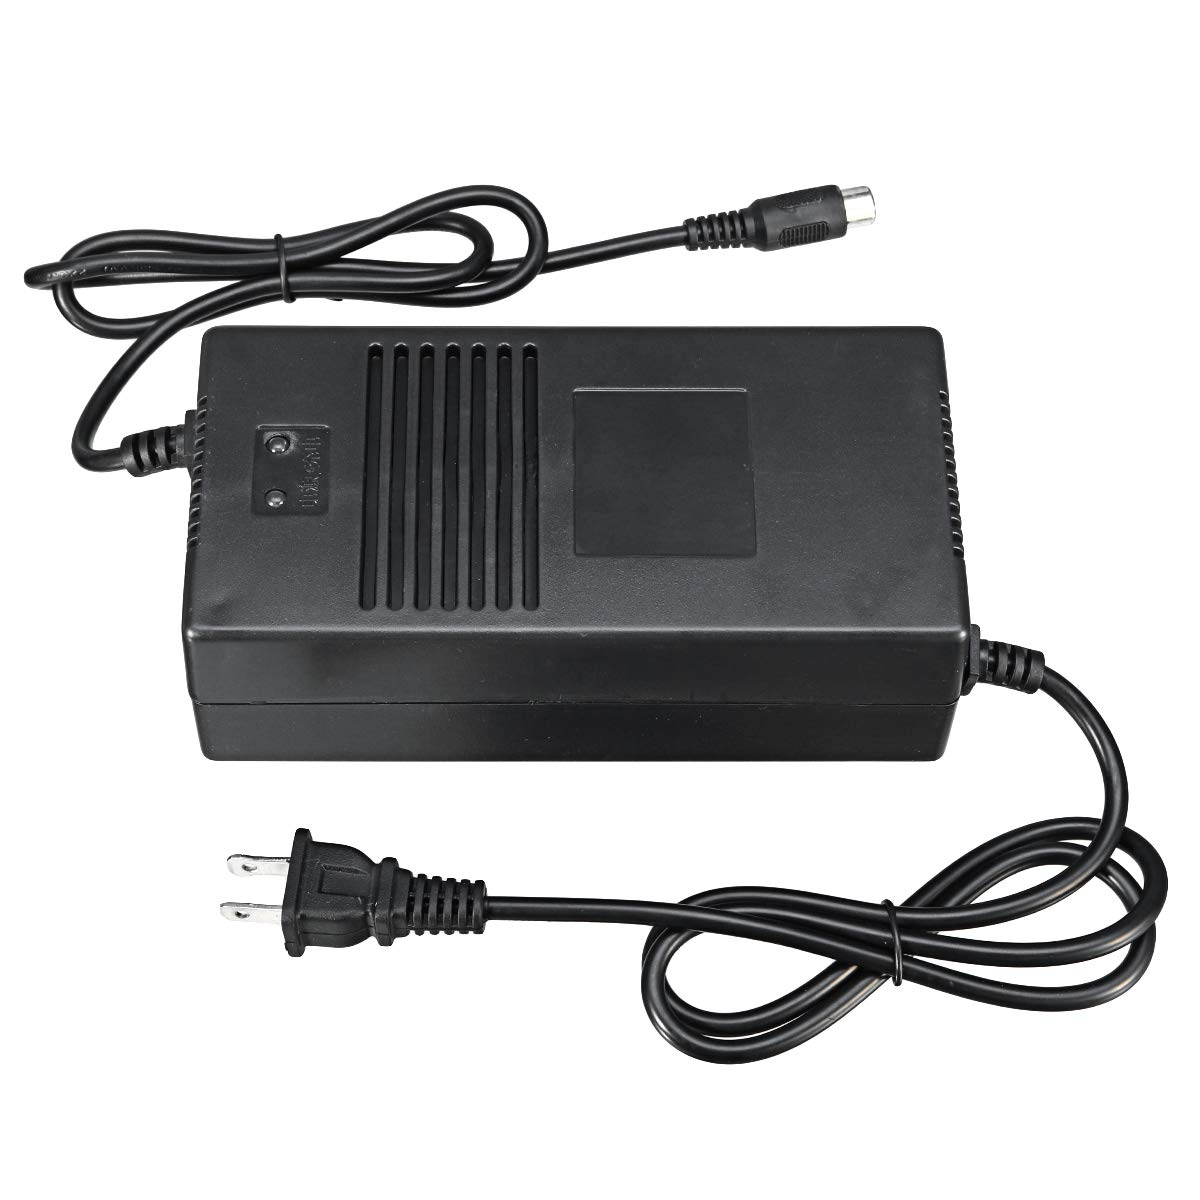 Kungfu Mall 54.6V 2A 48V Power Charger For Lithium Battery Electric Scooter E-Bike